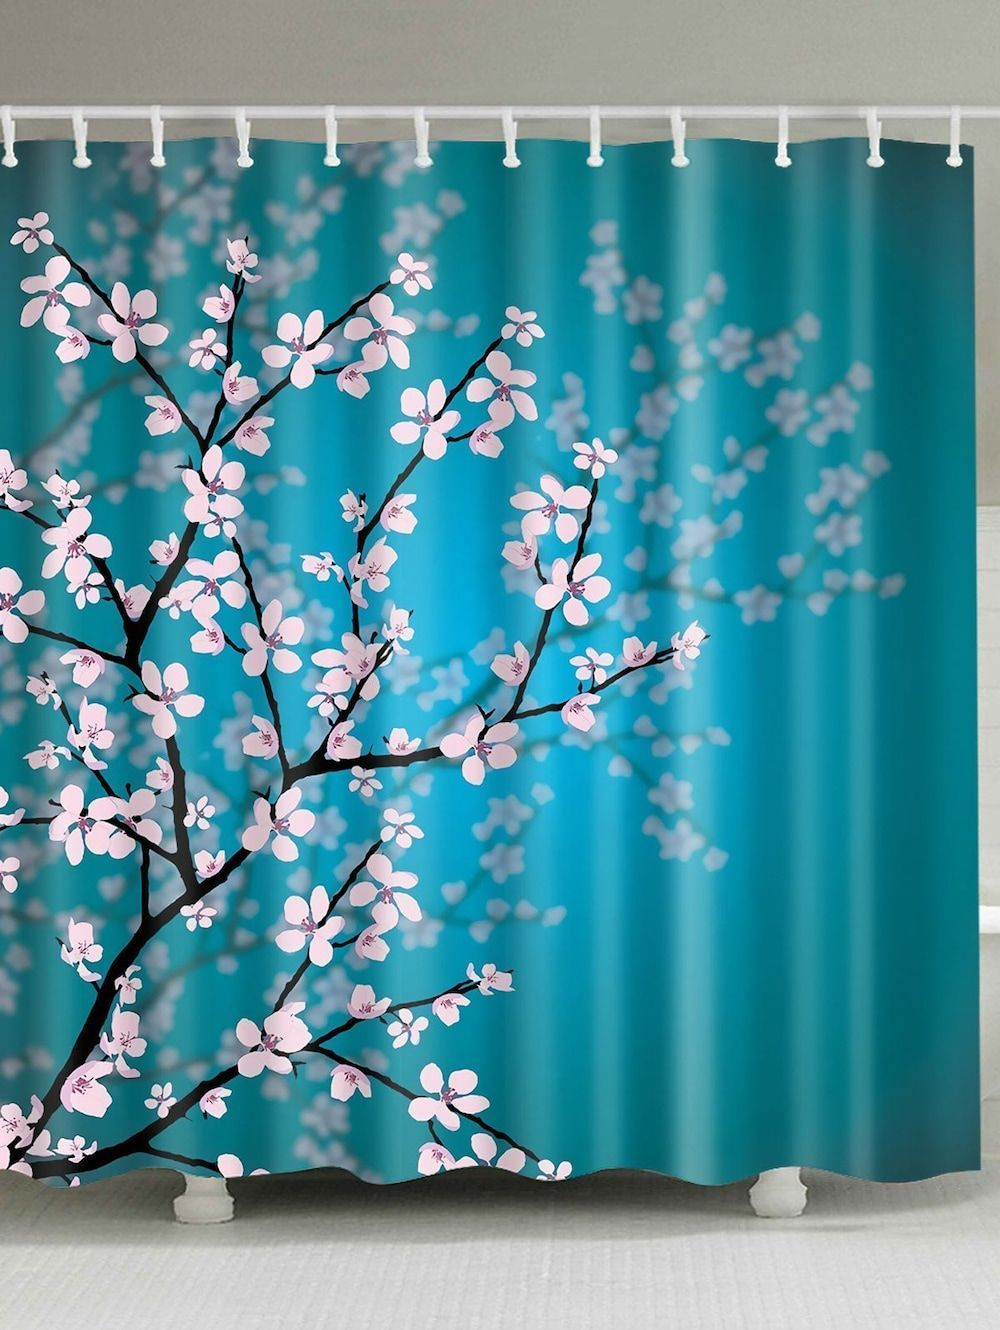 Plum Blossom Mouldproof Bathroom Shower Curtain